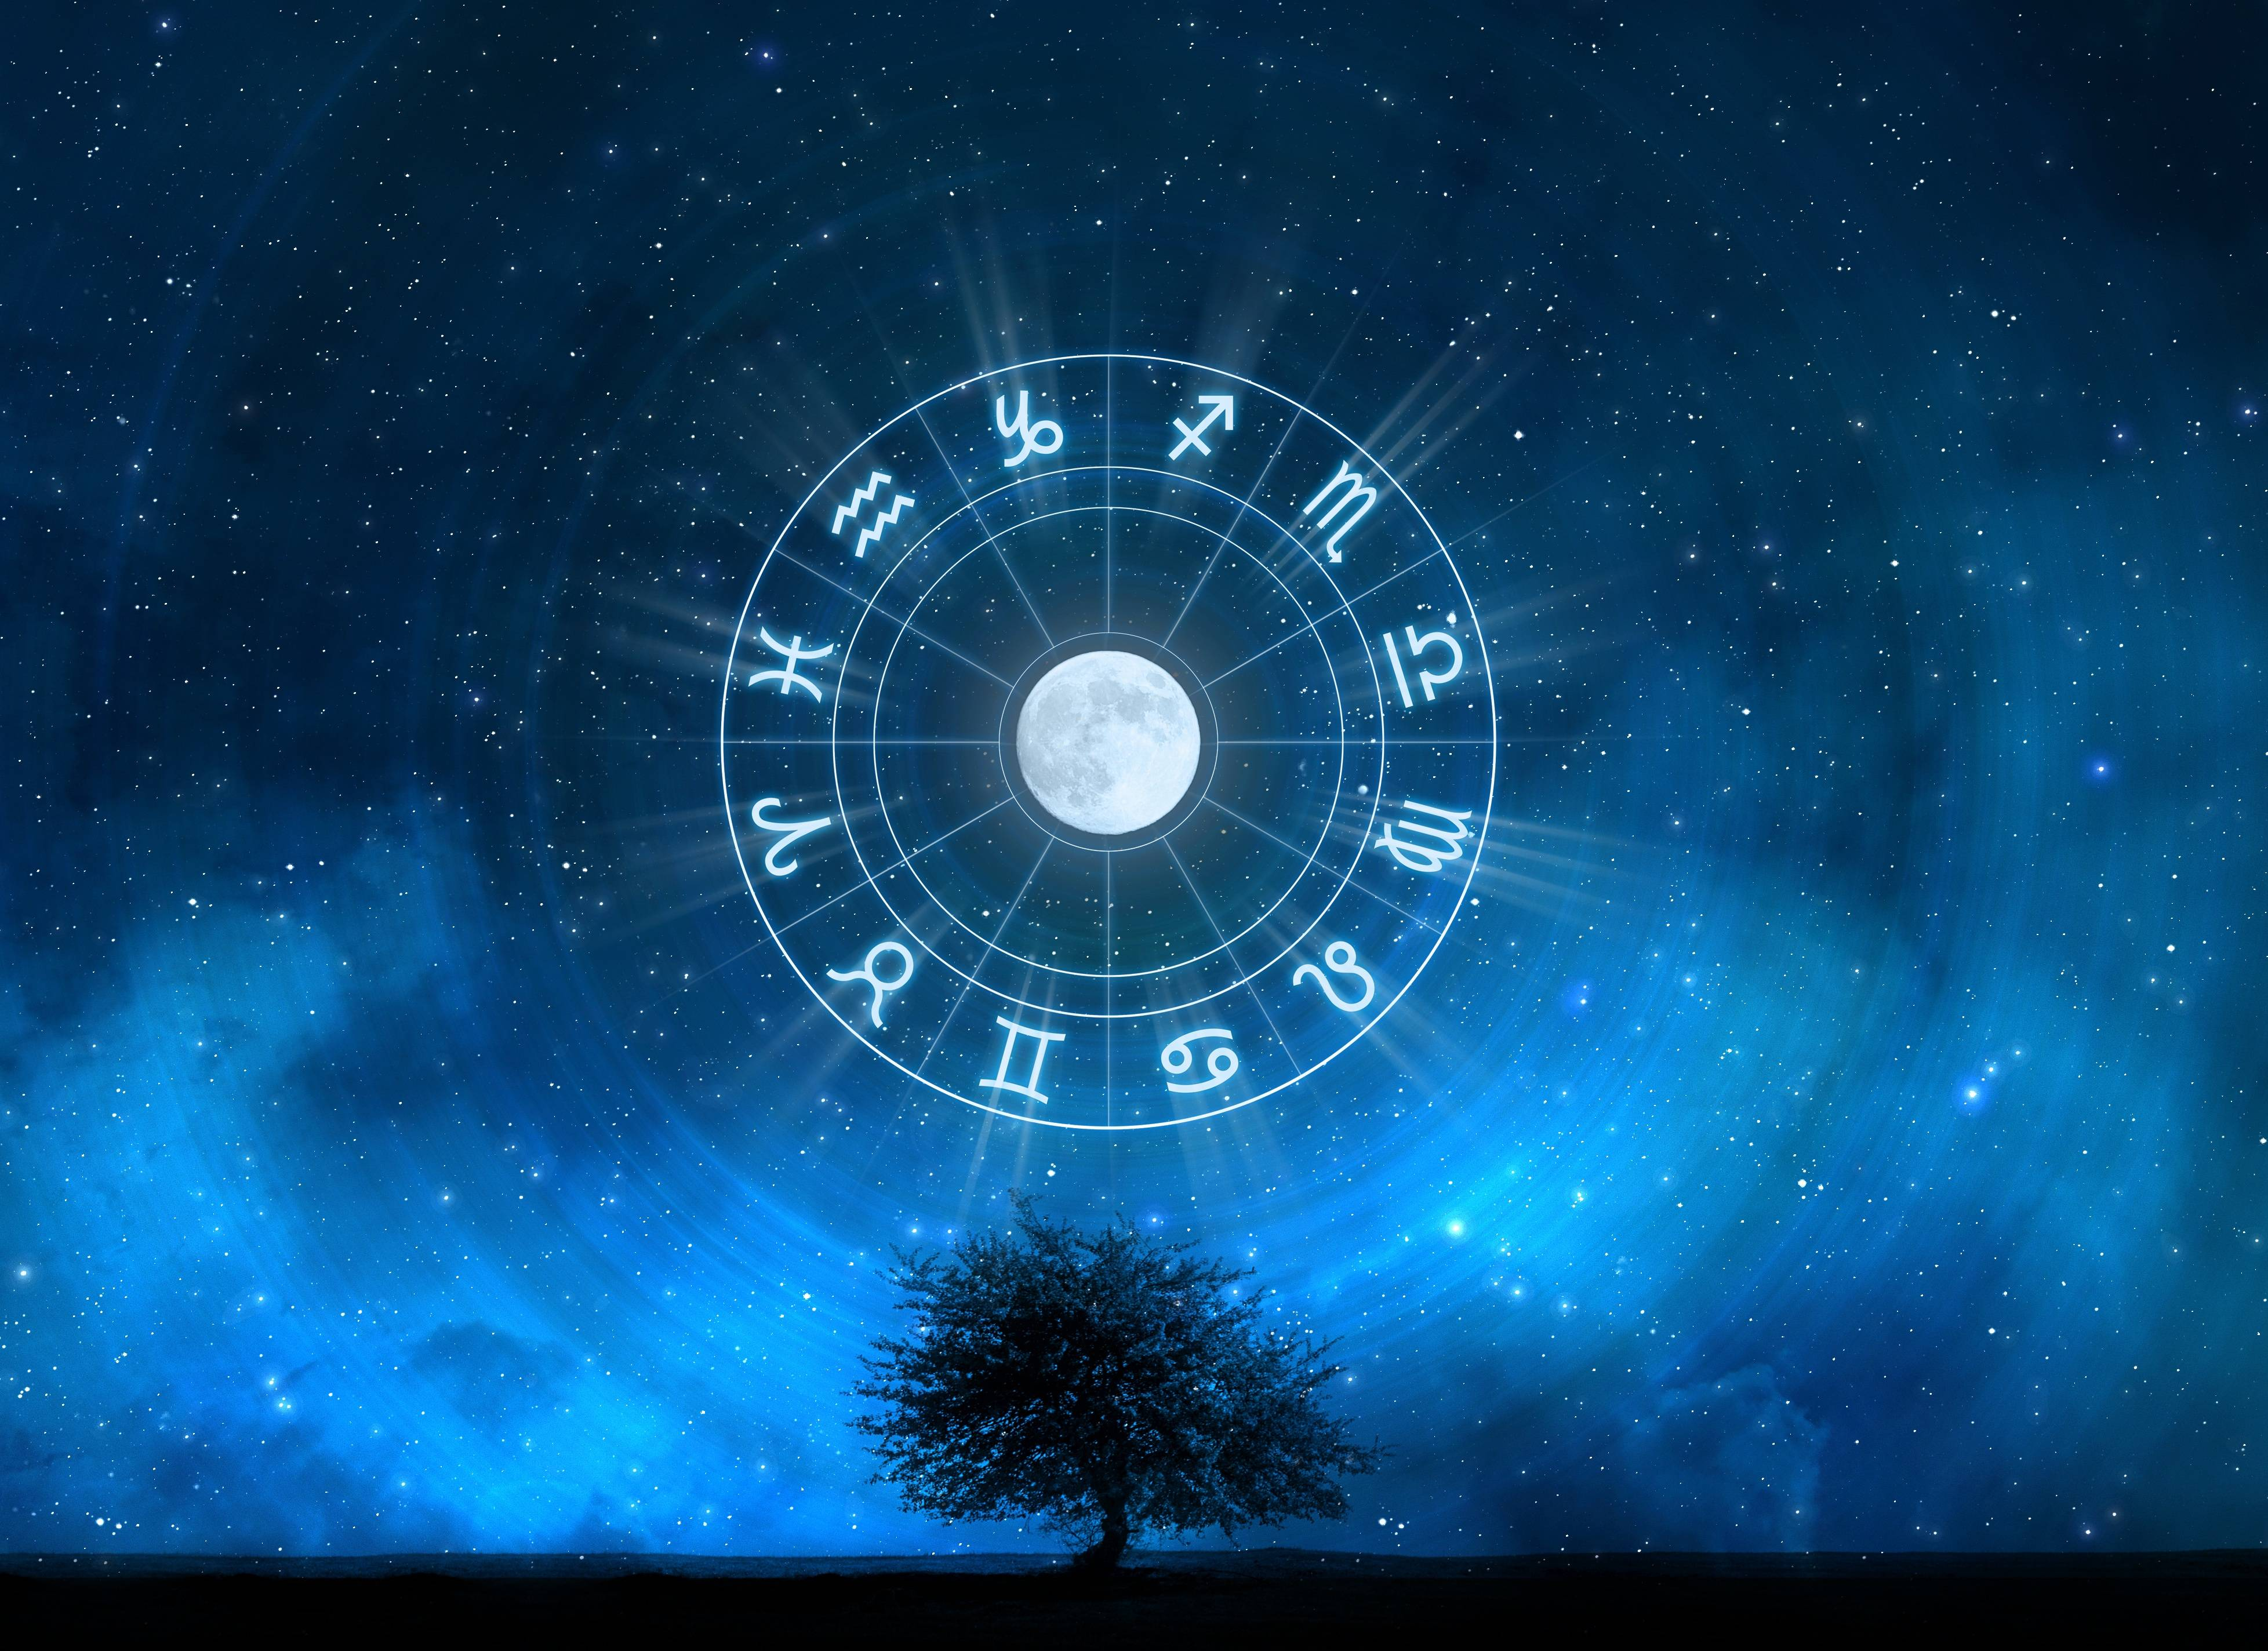 Horoscope Wallpapers Top Free Horoscope Backgrounds